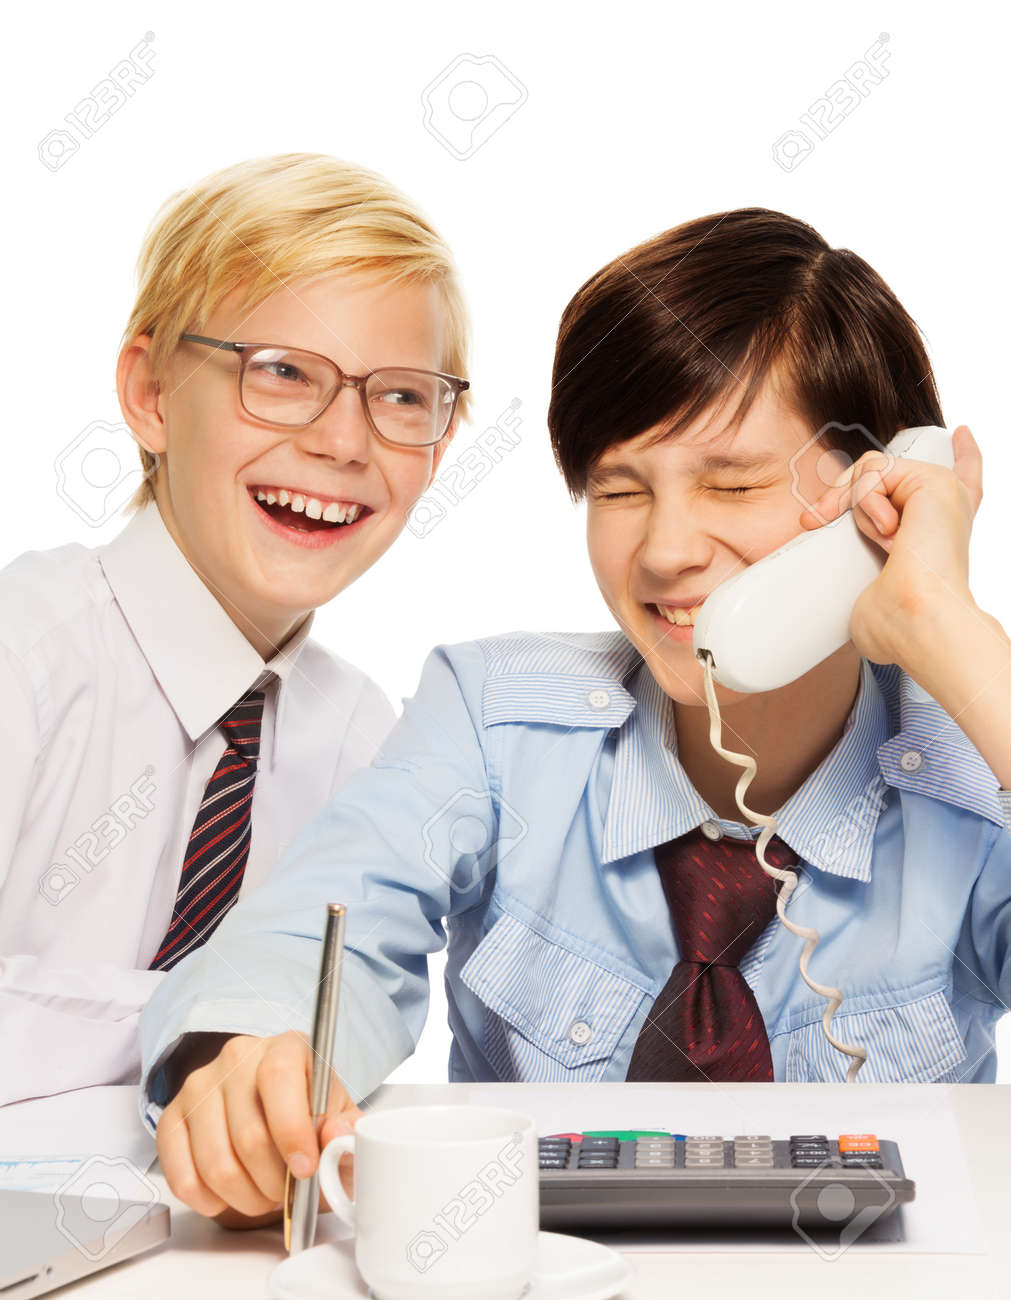 Two kids playing adult businessmen joking and laughing on the phone Stock Photo - 17540830